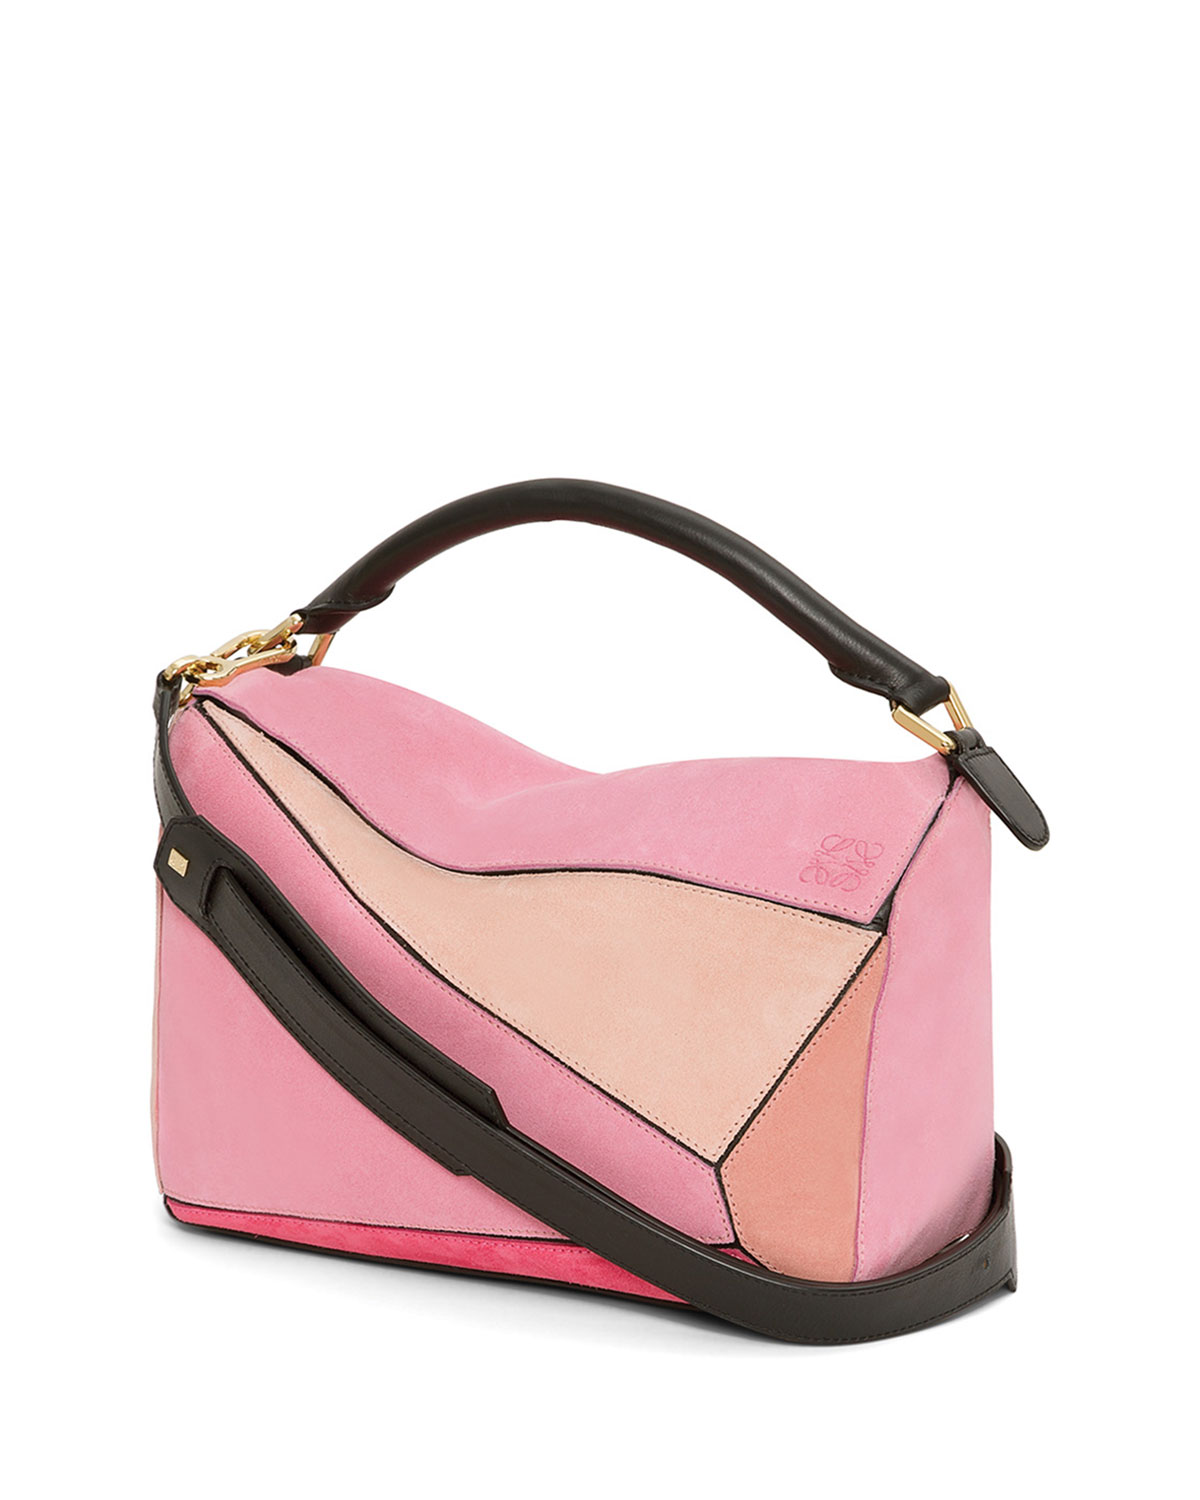 872b944e9e6 Loewe Puzzle Leather   Suede Small Bag